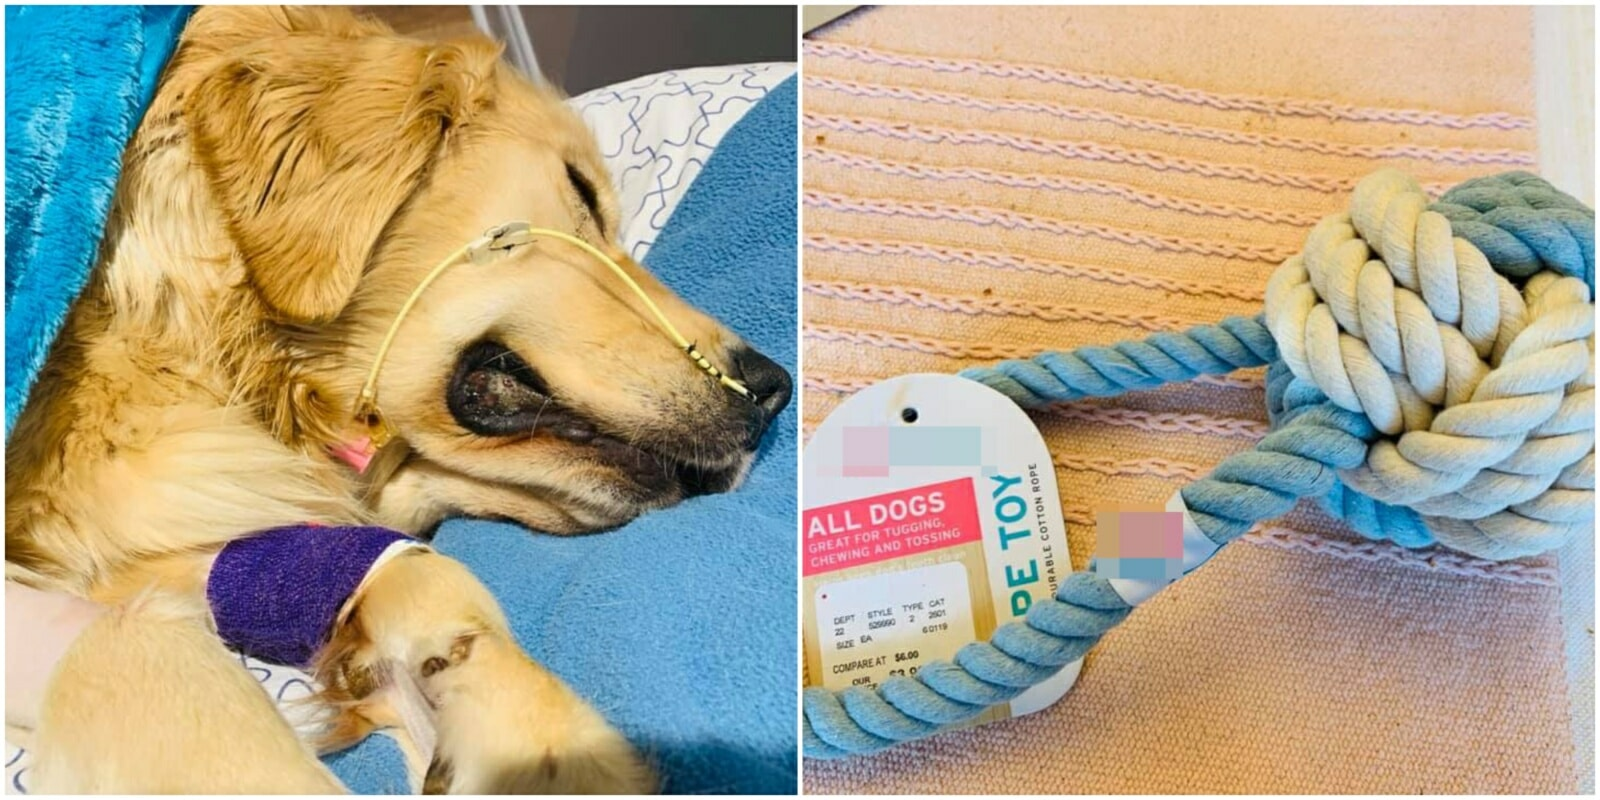 Woman Warns of Rope Toy Dangers After Her 1yo Dog Accidentally Swallowed It & Died - WORLD OF BUZZ